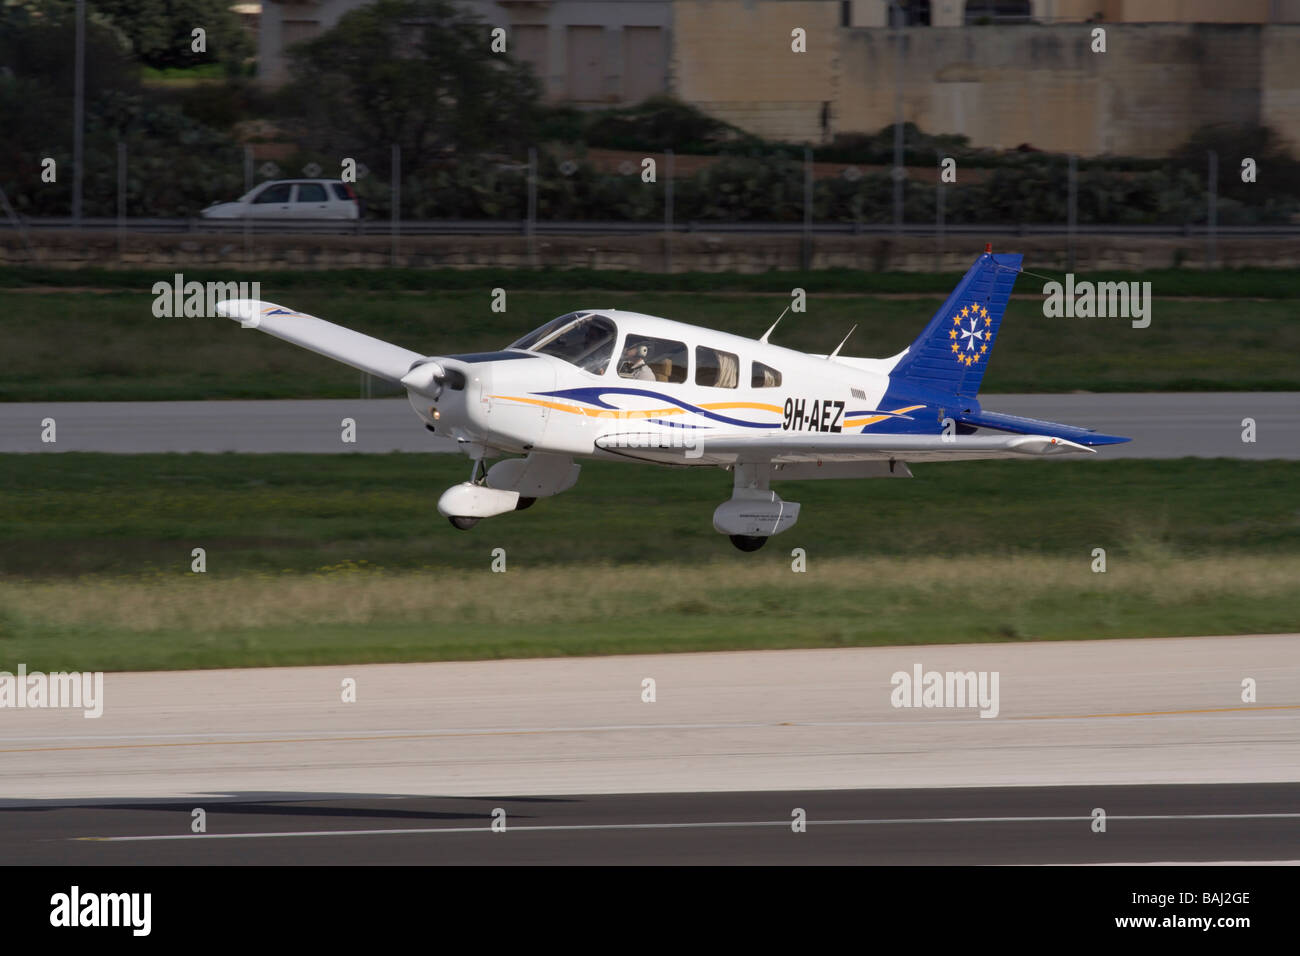 Piper PA-28 Warrior II single-engine light plane flying low over the runway - Stock Image